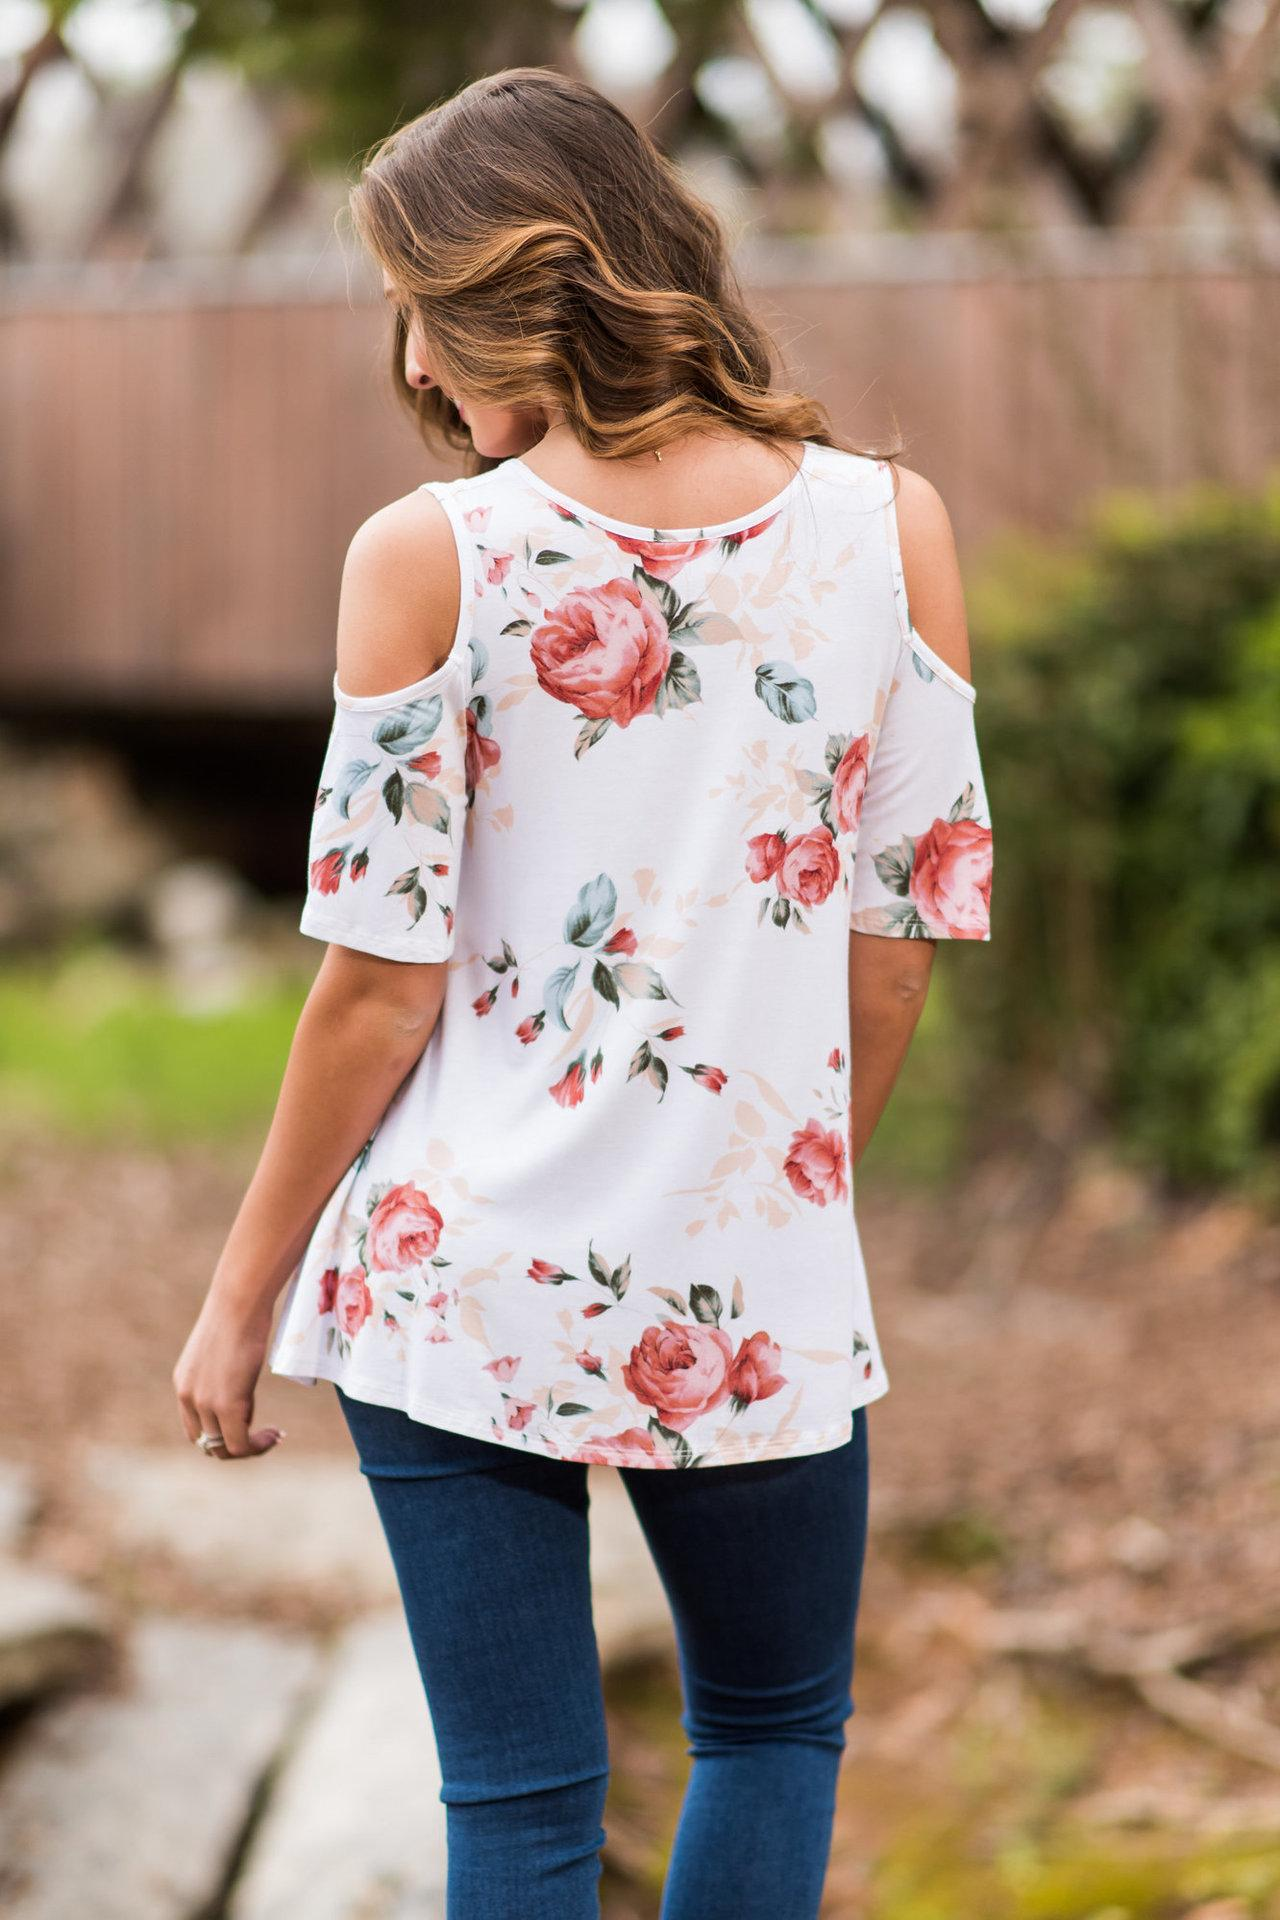 The new sales of European and American fashion printed loose shoulder t-shirts